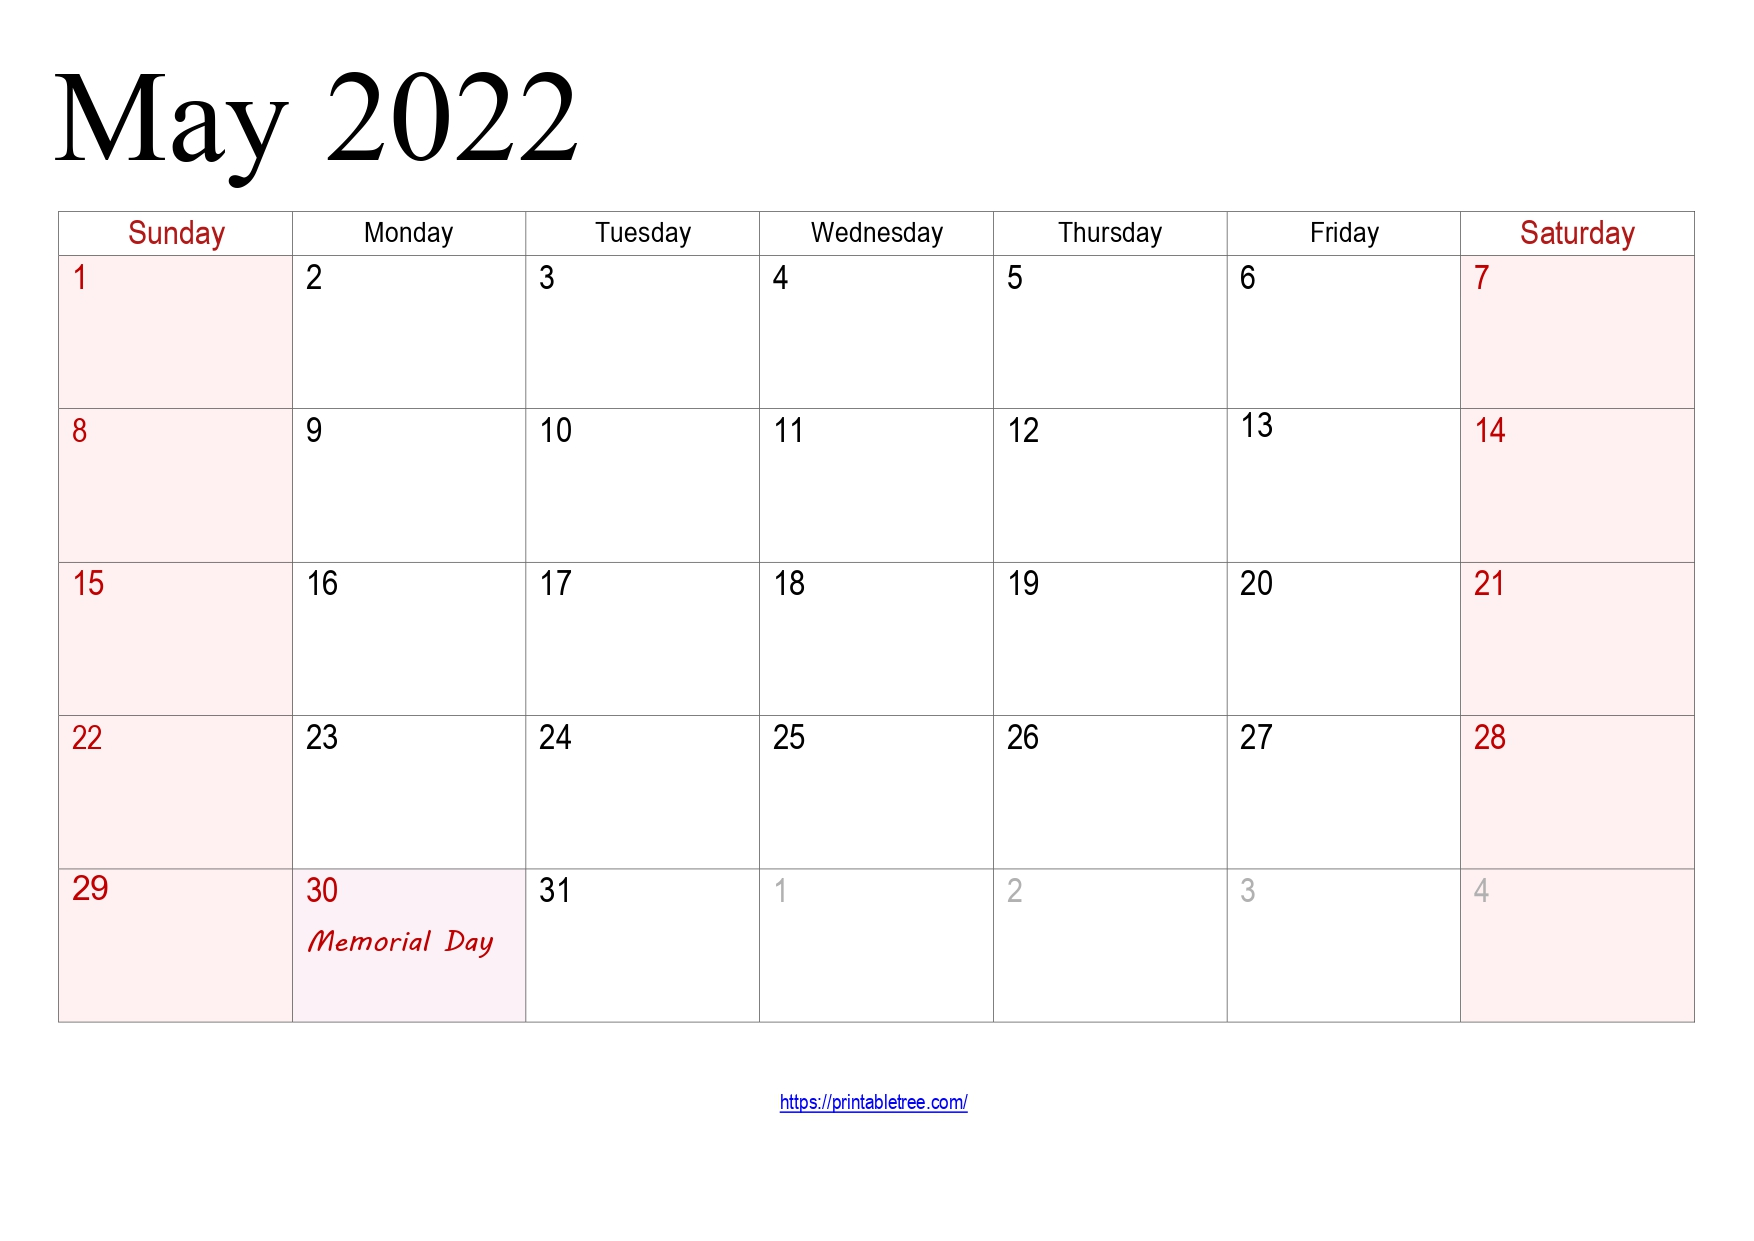 May Calendar 2022 with holidays